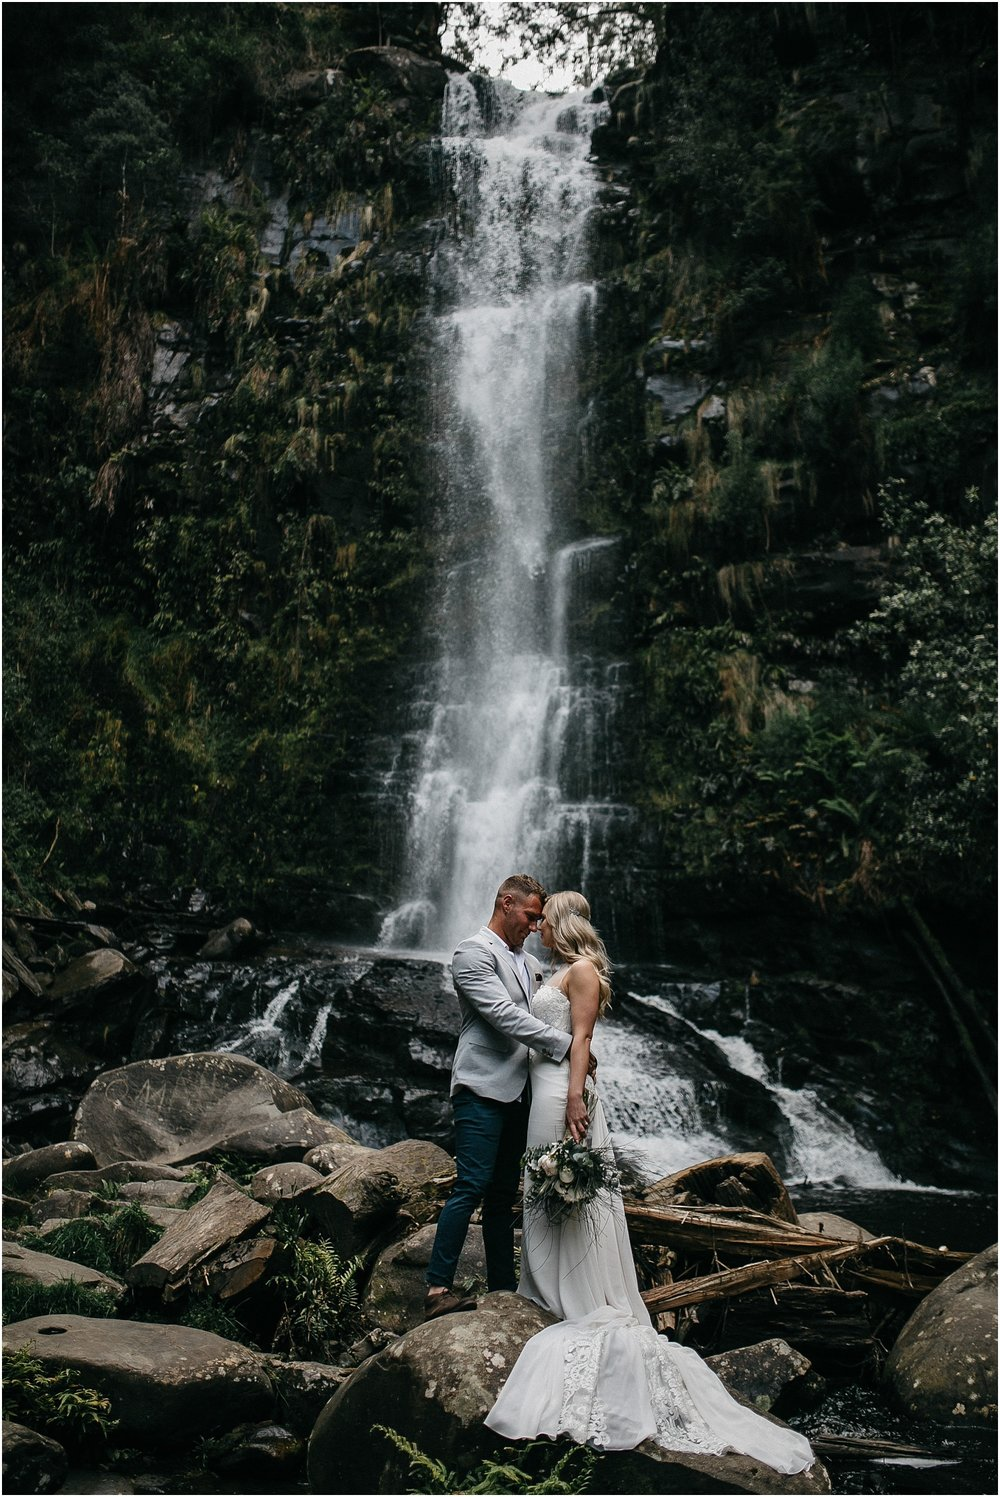 Renee and Ash's real elopement in Lorne on the Great Ocean Roadwith the ceremony at erskin falls._0091.jpg